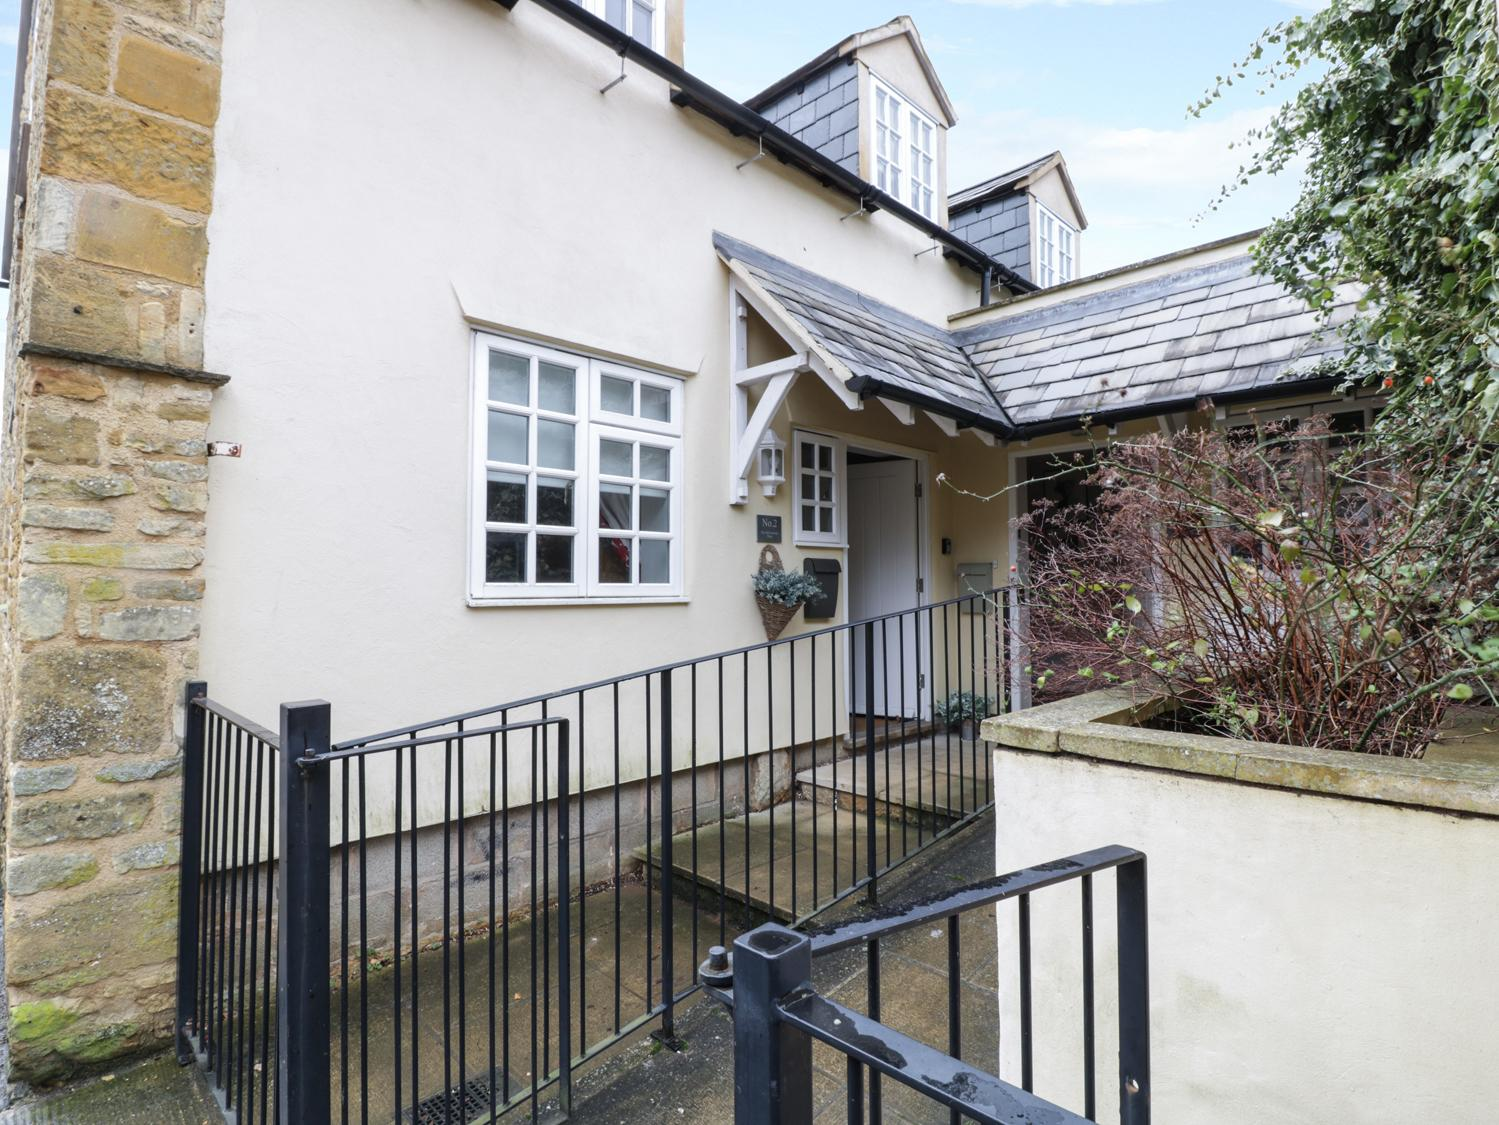 Holiday Cottage Reviews for 2 The Old Curiosity Shop - Holiday Cottage in Moreton-in-marsh, Gloucestershire